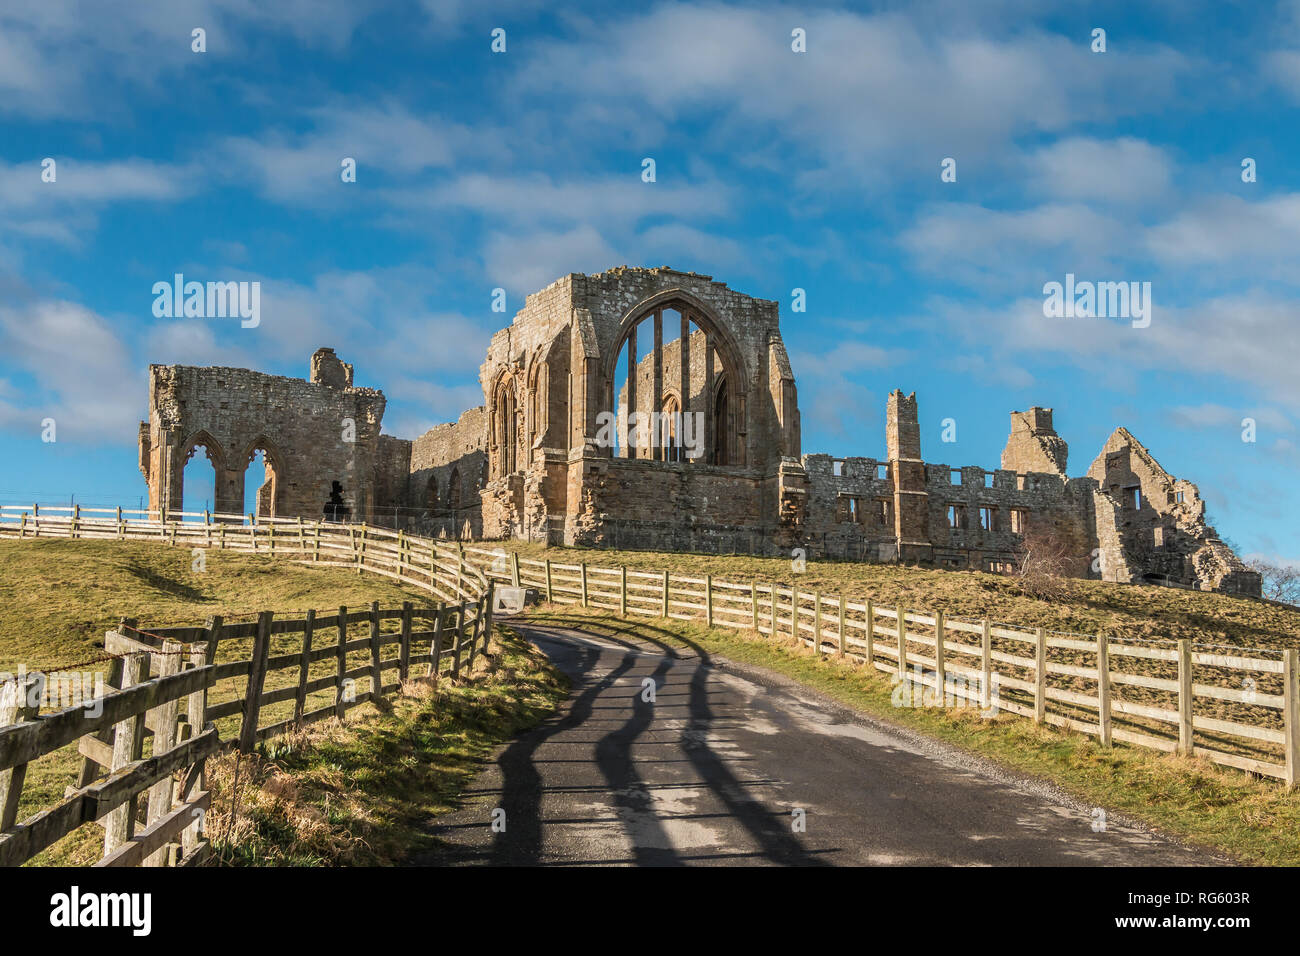 The remains of the Premonstratensian Monastery Egglestone Abbey, Barnard Castle, Teesdale, UK in winter sunshine Stock Photo